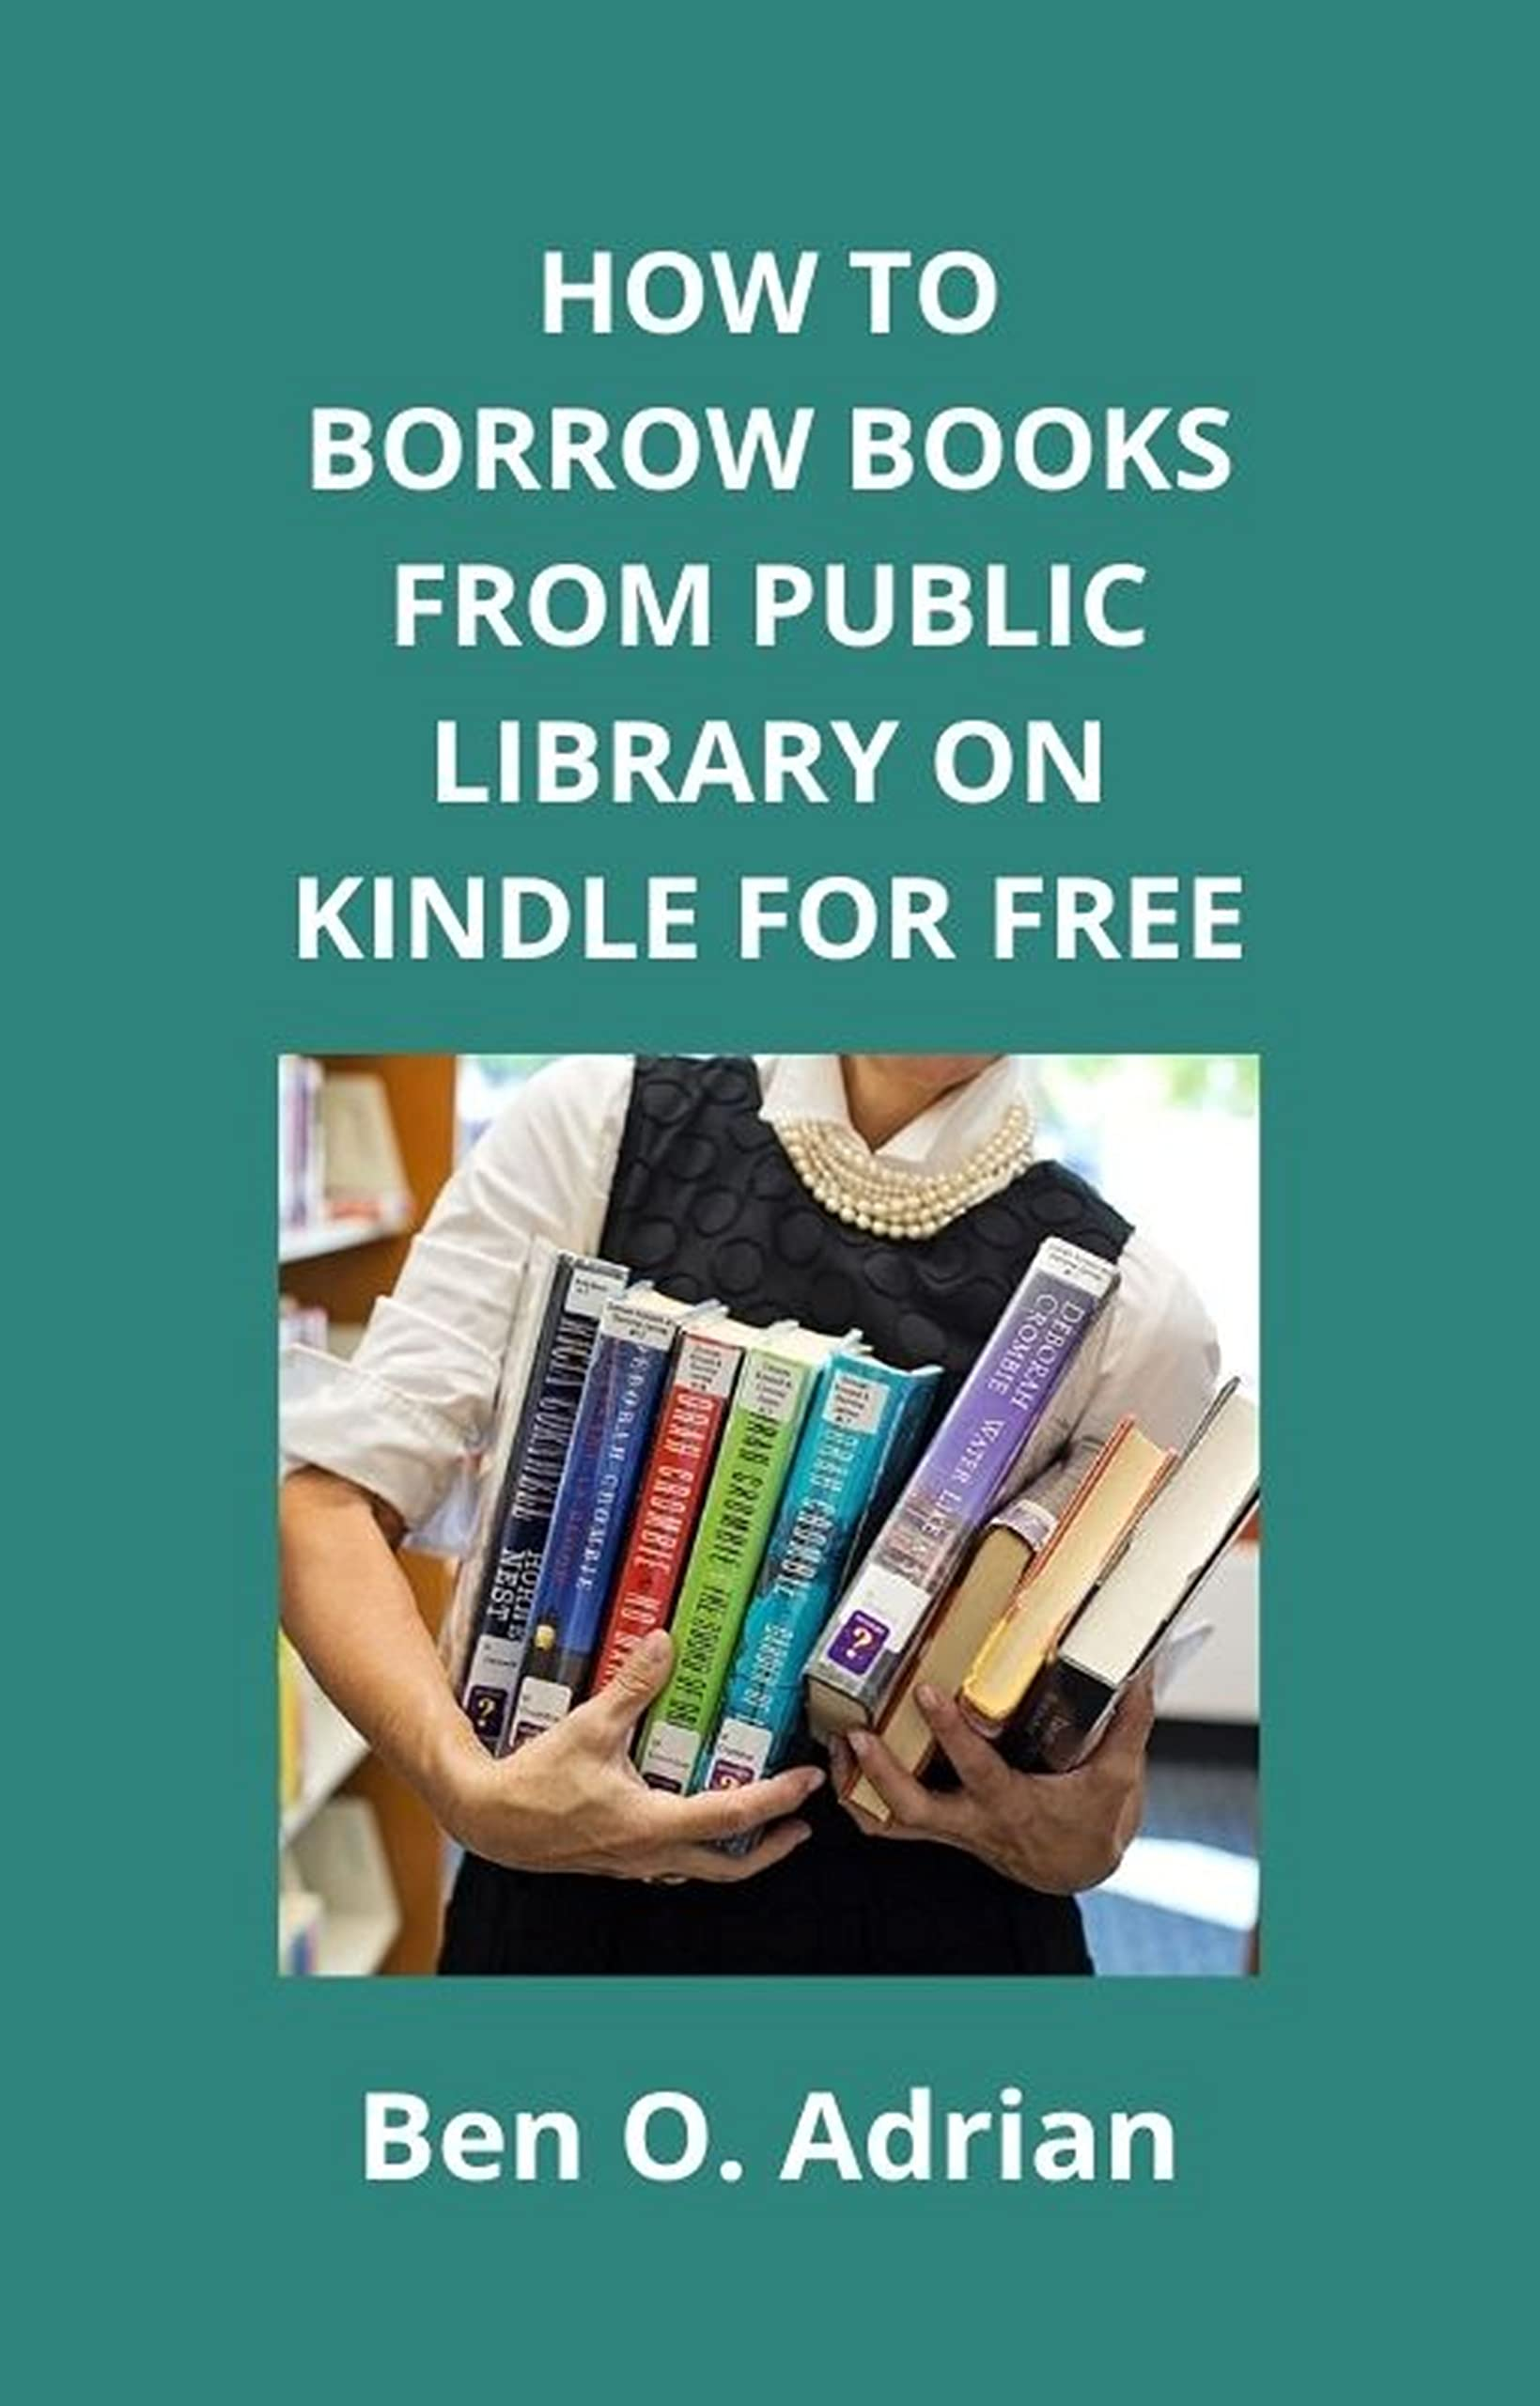 HOW TO BORROW BOOKS FROM PUBLIC LIBRARY ON KINDLE FOR FREE